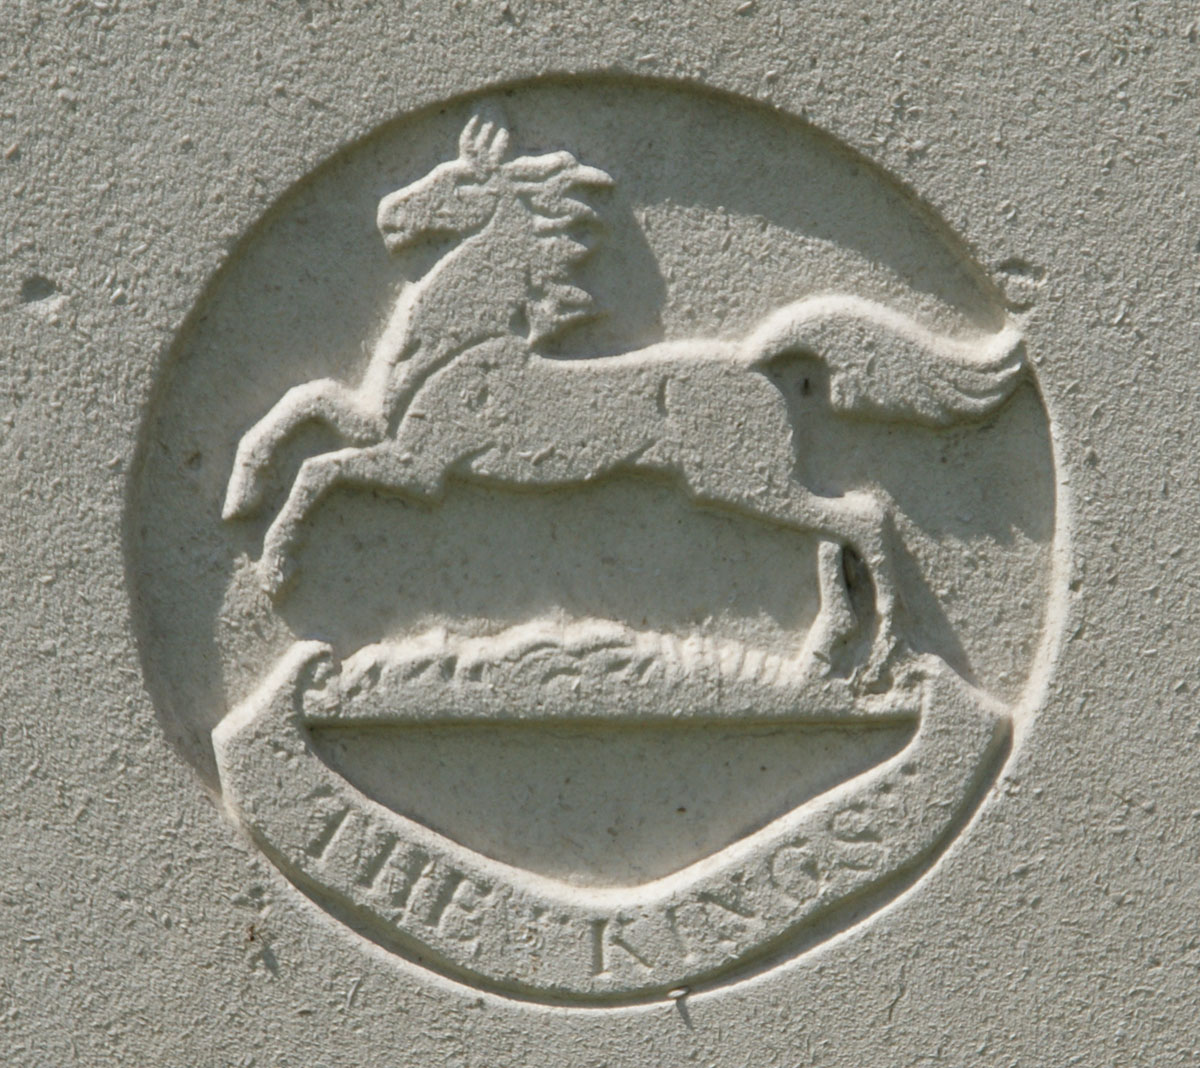 Liverpool Regiment badge